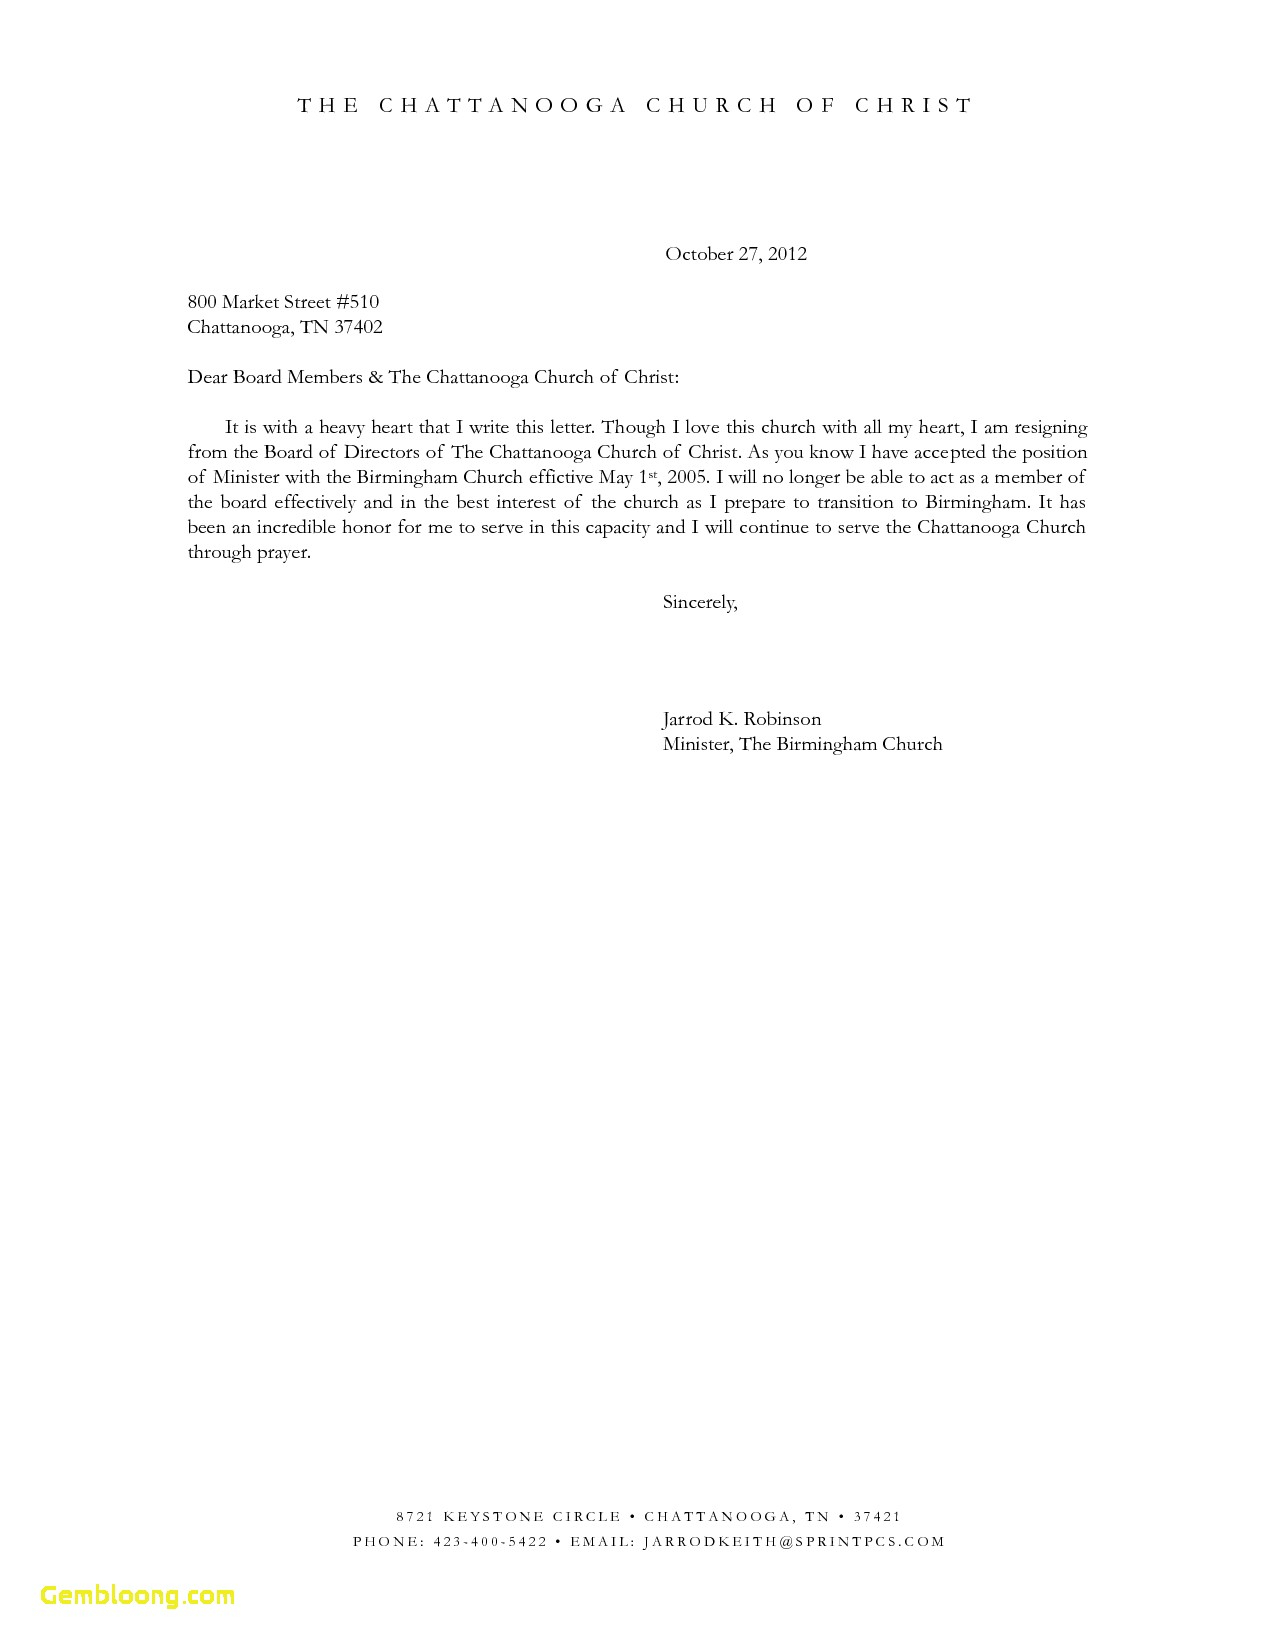 Church Membership Letter Template - Church Resignation Letter Sample Cover Letter Church Membership